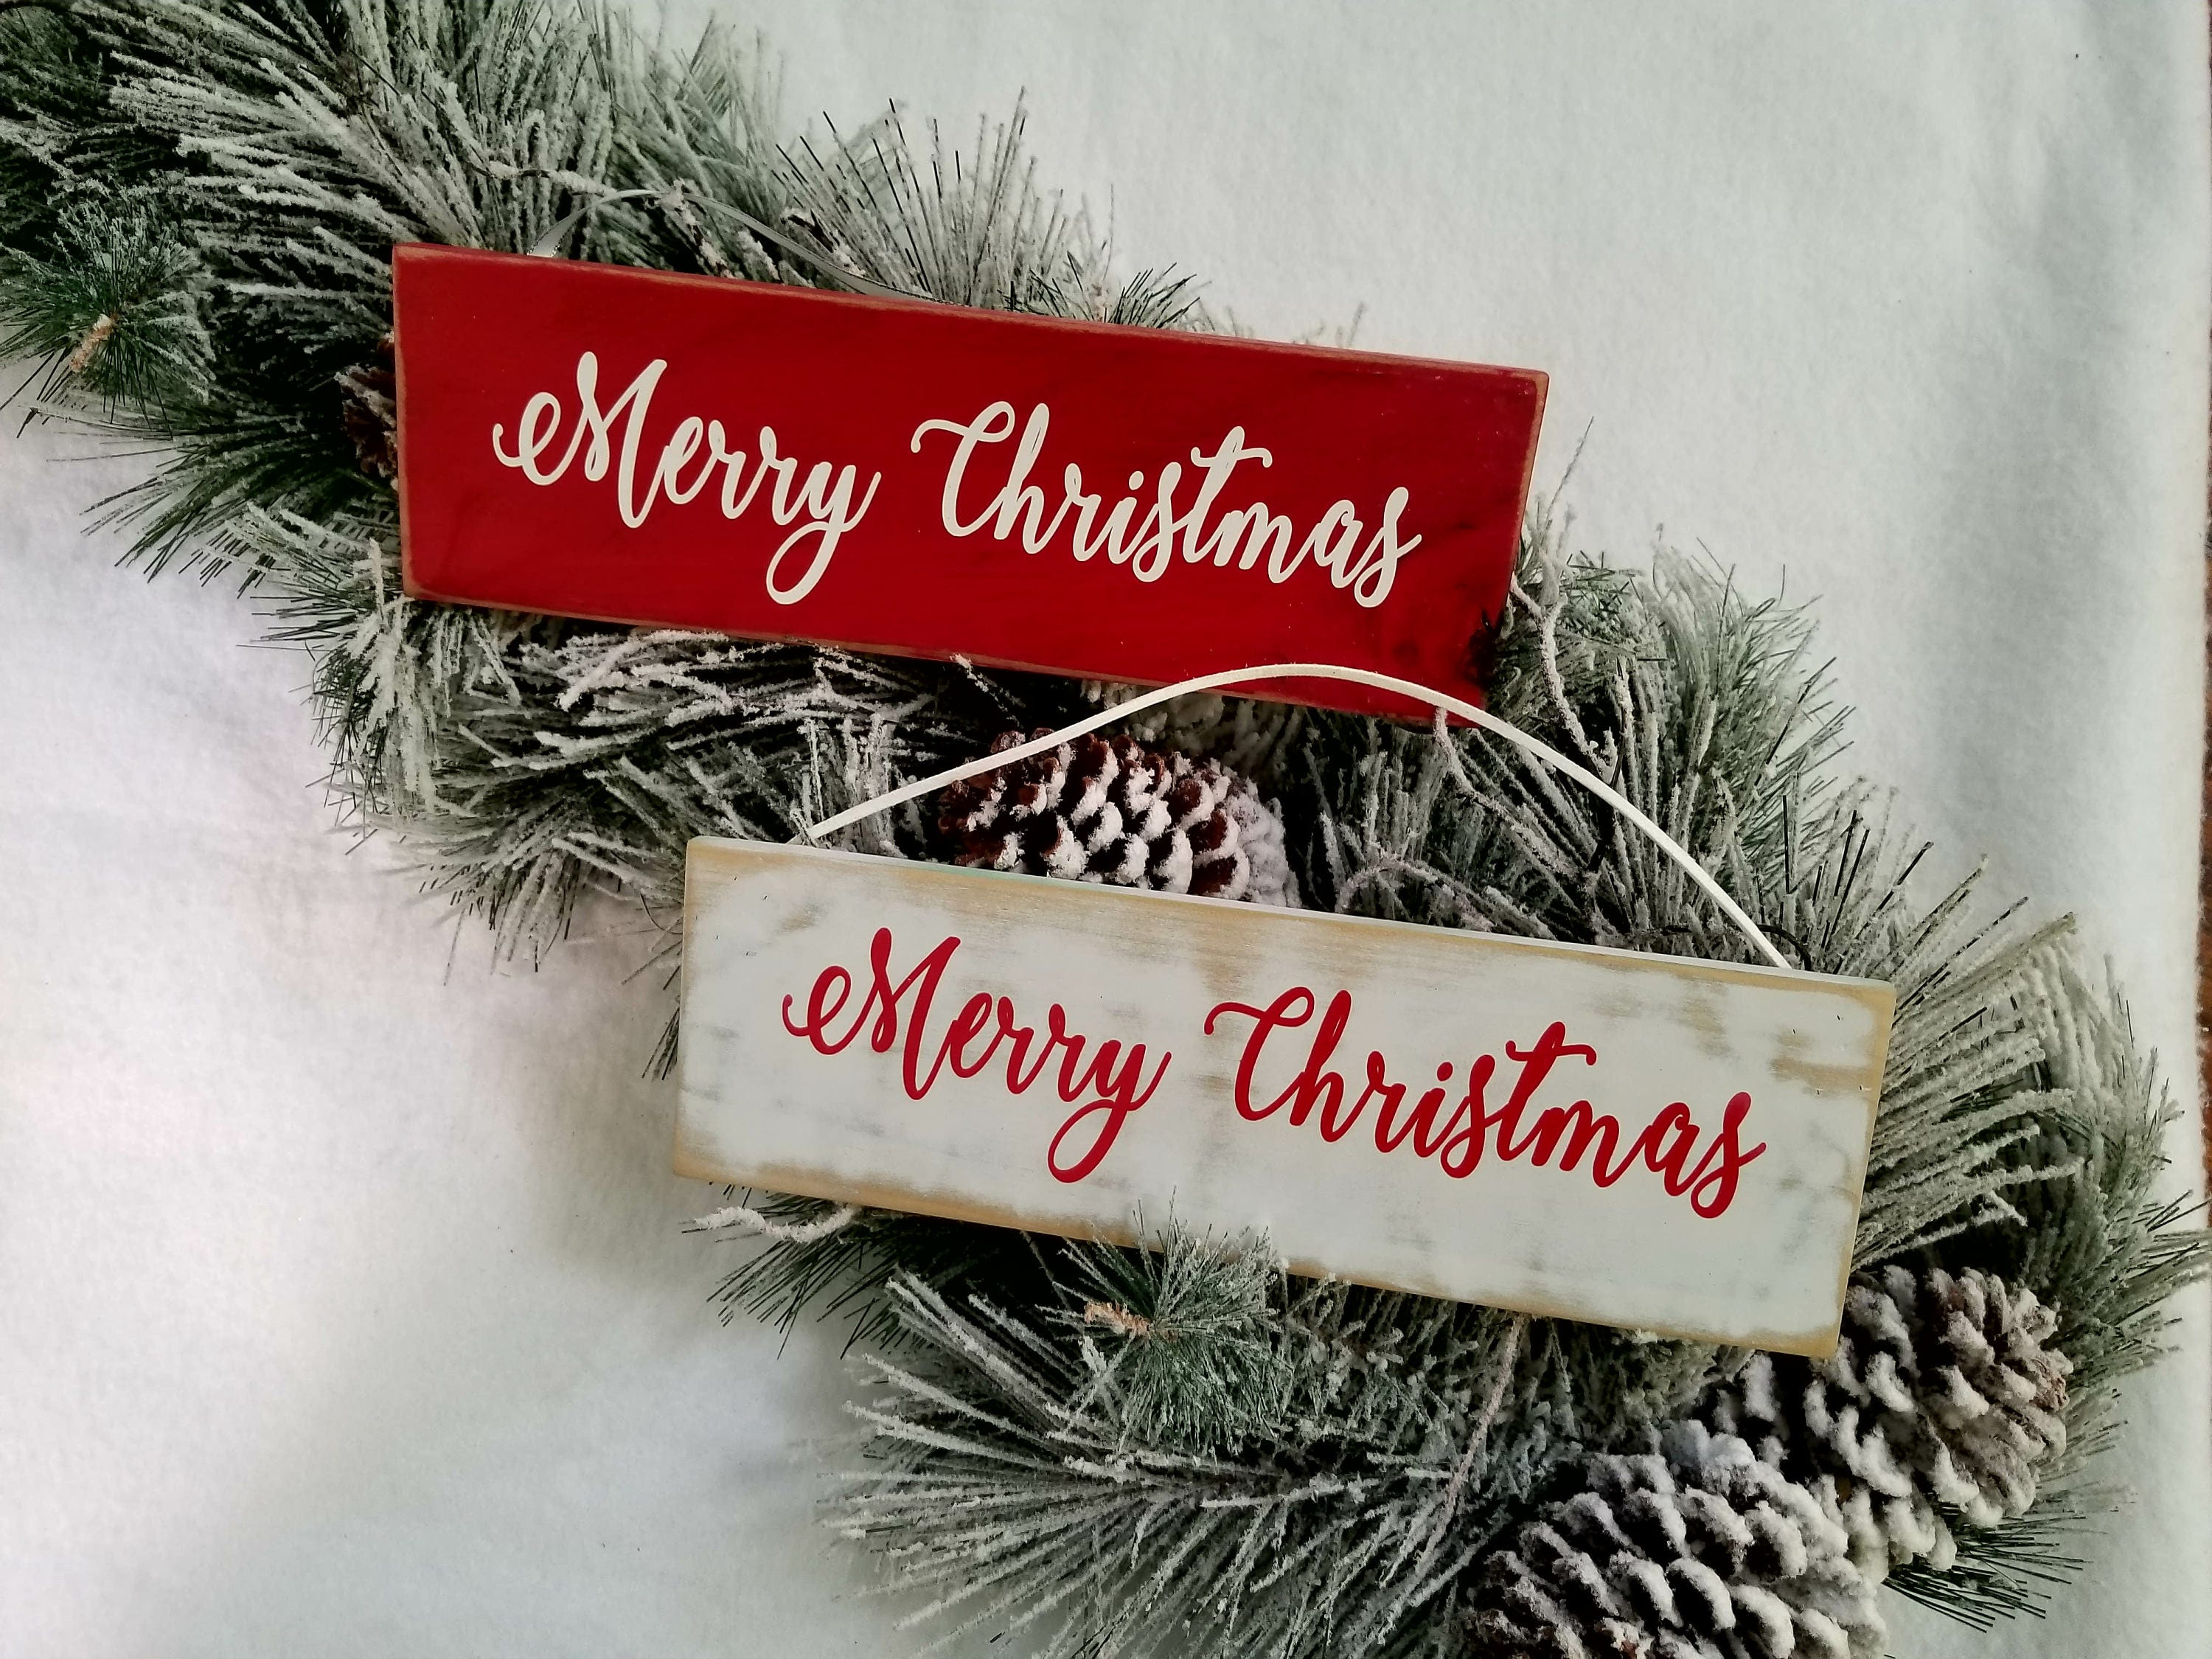 merry christmas sign rustic christmas decorations wood handmade farmhouse holiday ornaments decor signs gift